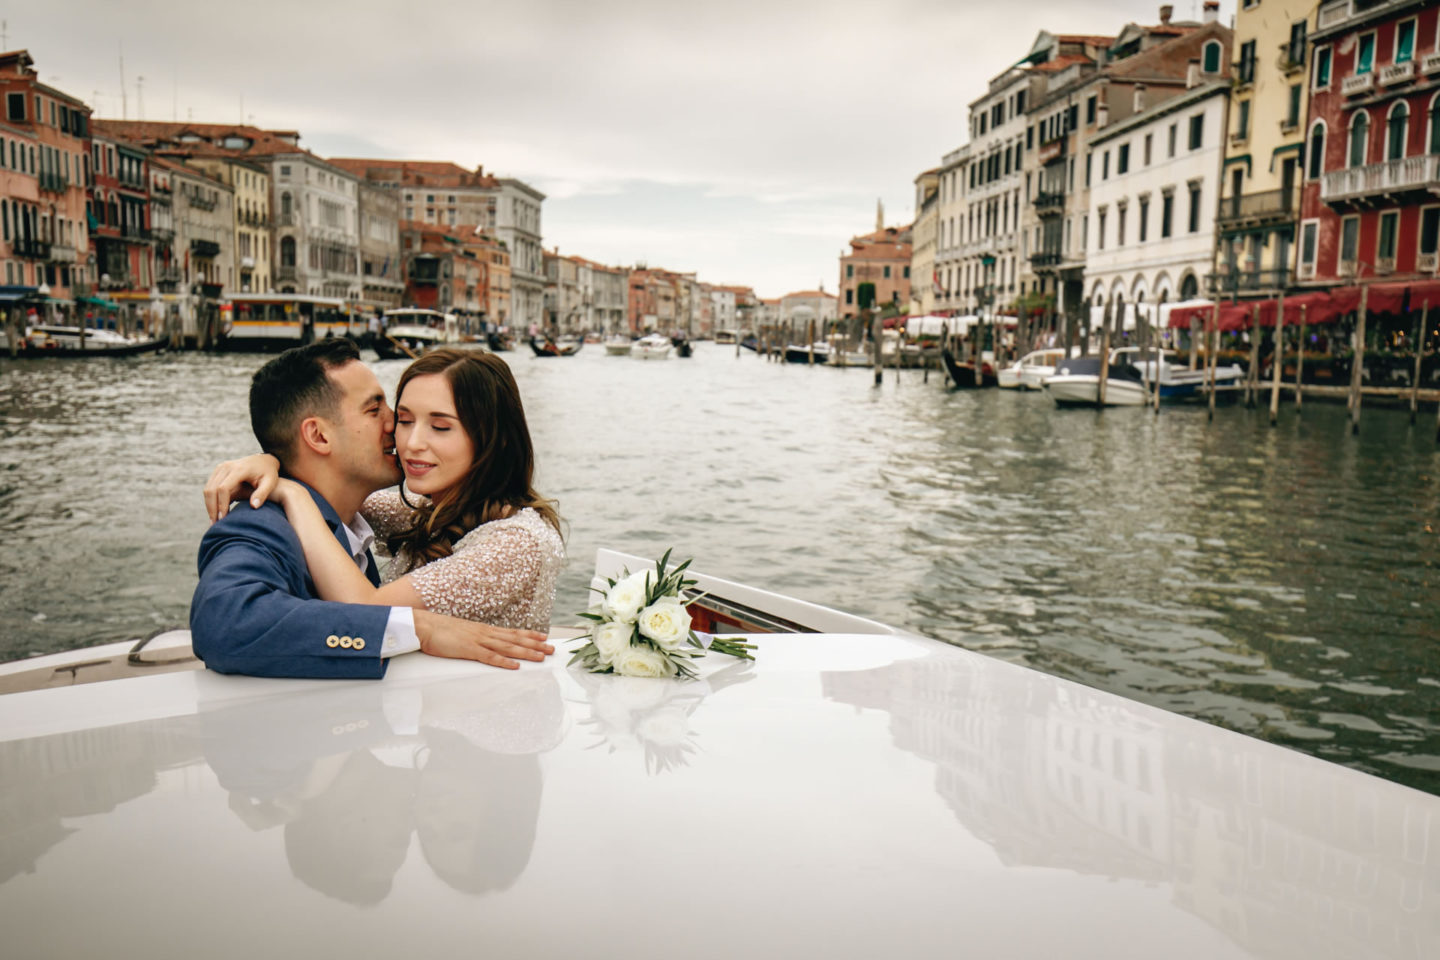 Romantic elopement in Venice :: Luxury wedding photography - 3